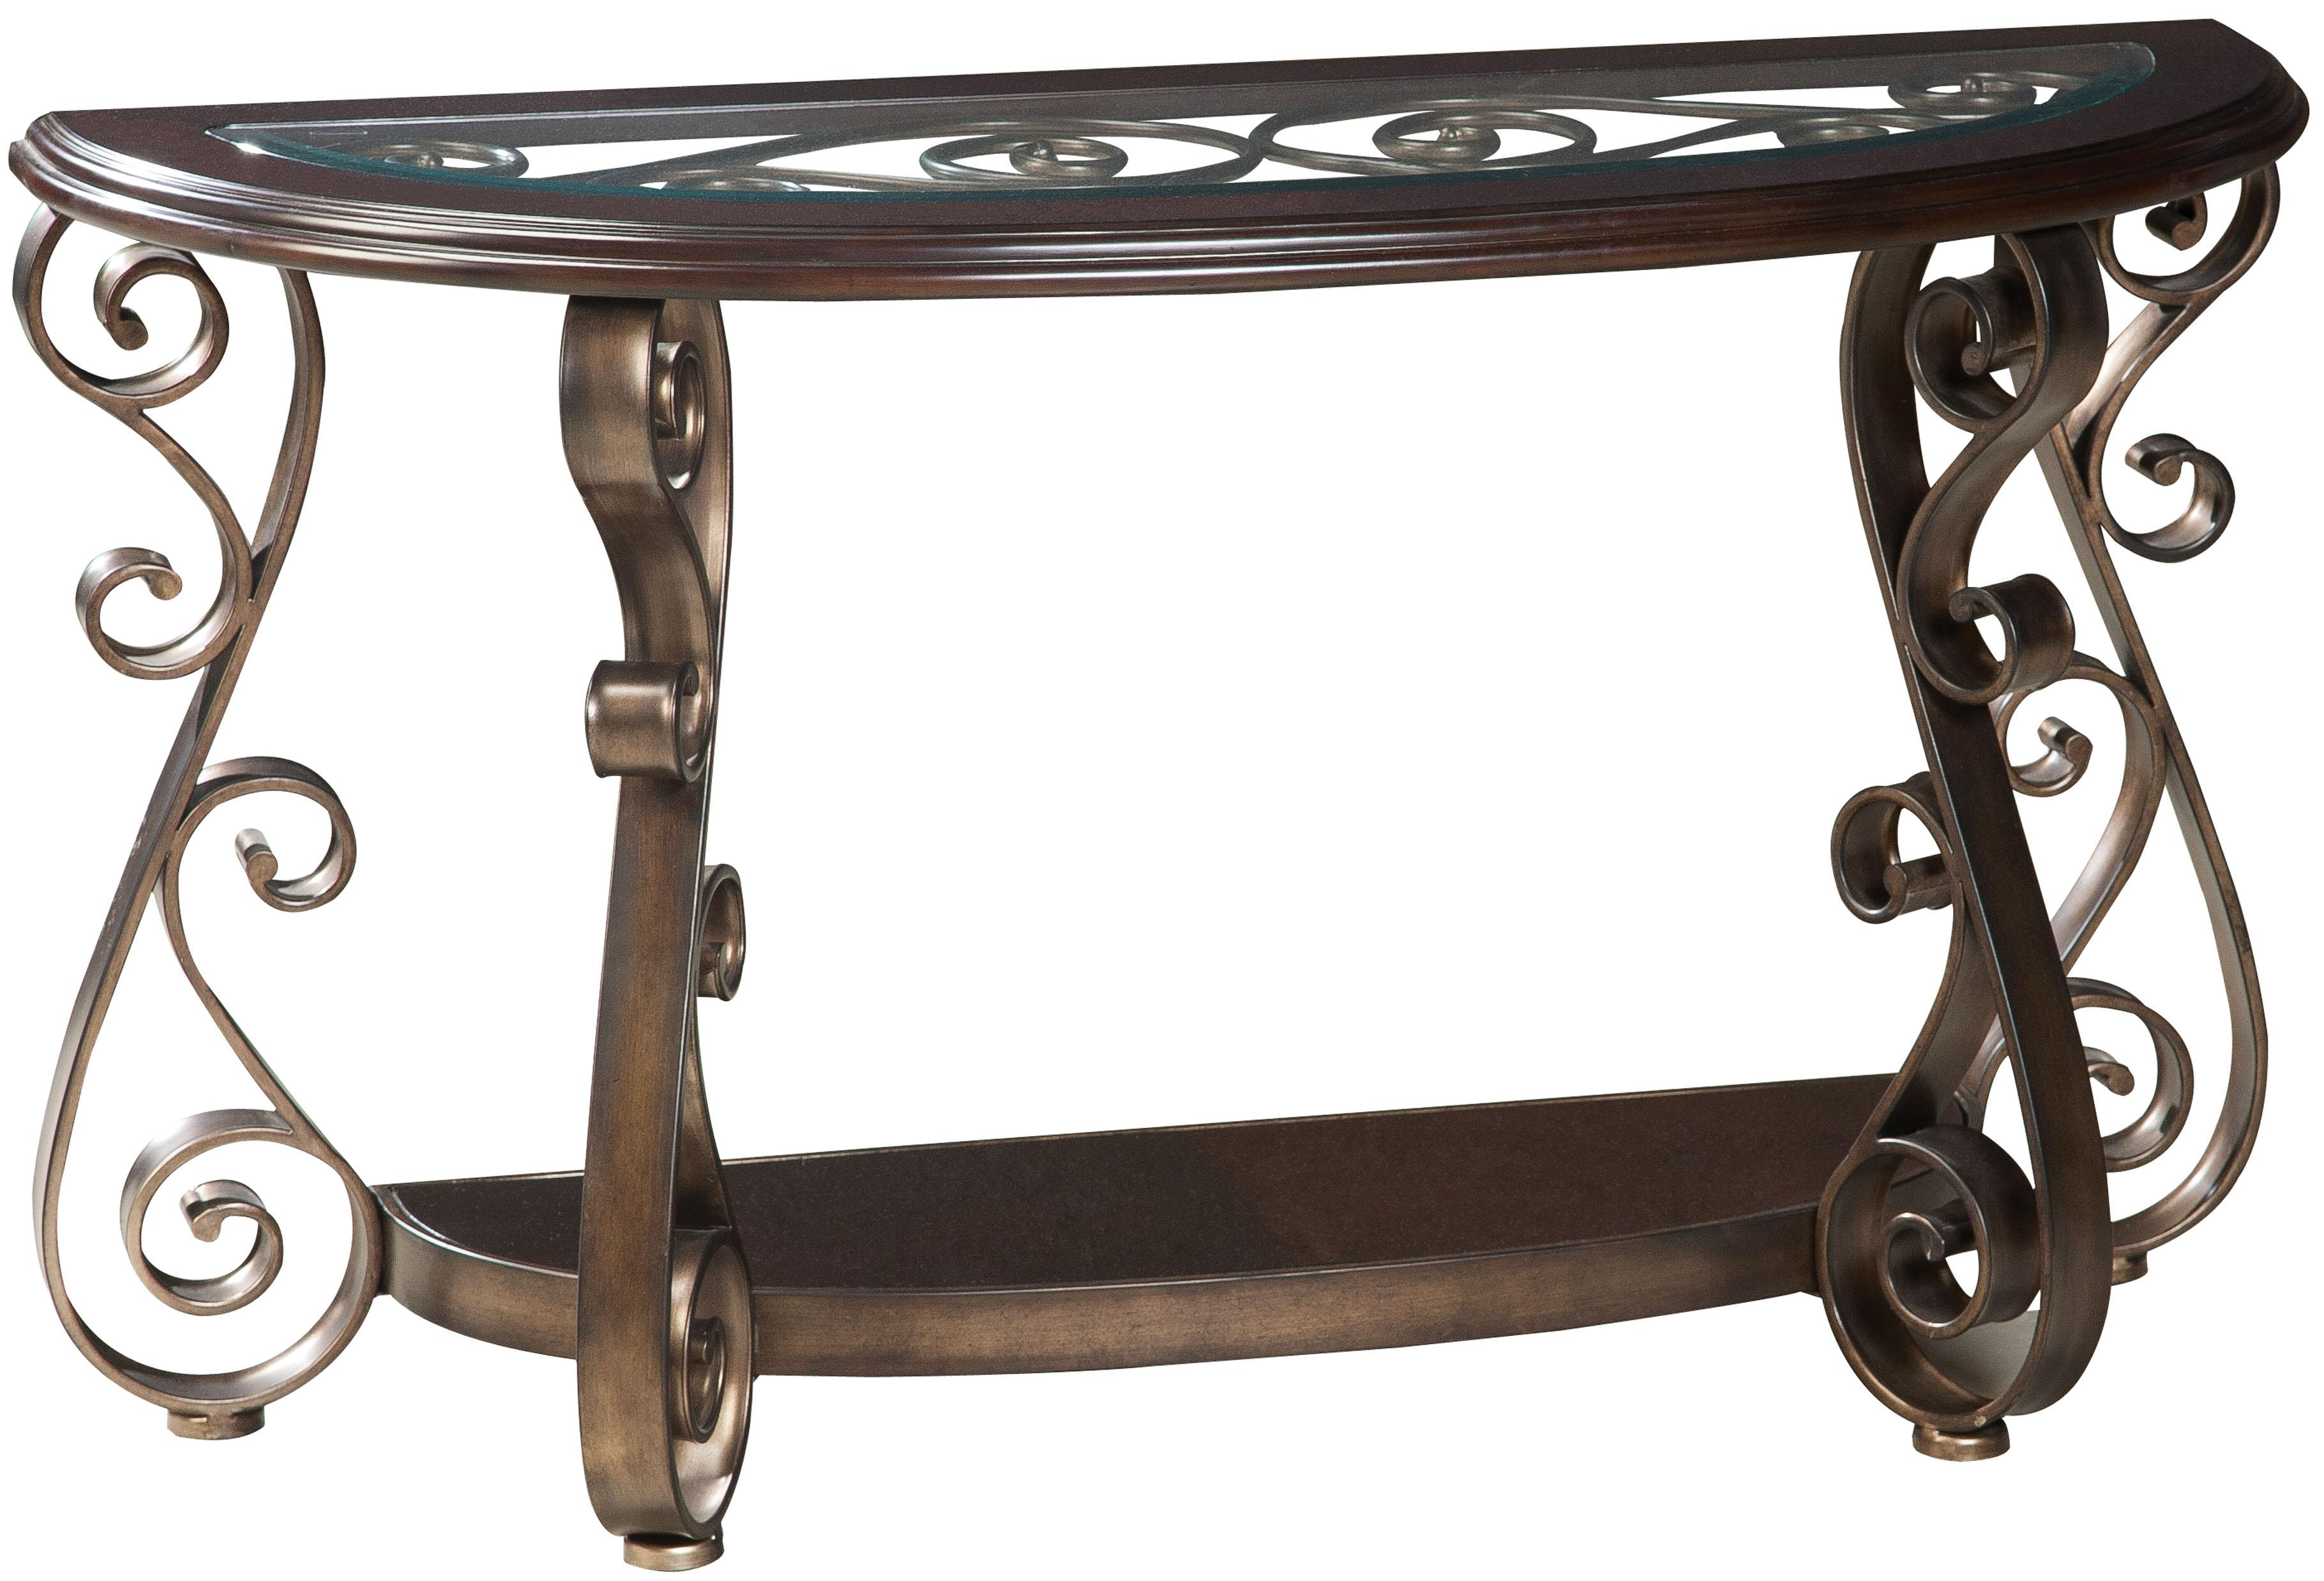 Standard Furniture Bombay Old World Sofa Table with Glass Top and